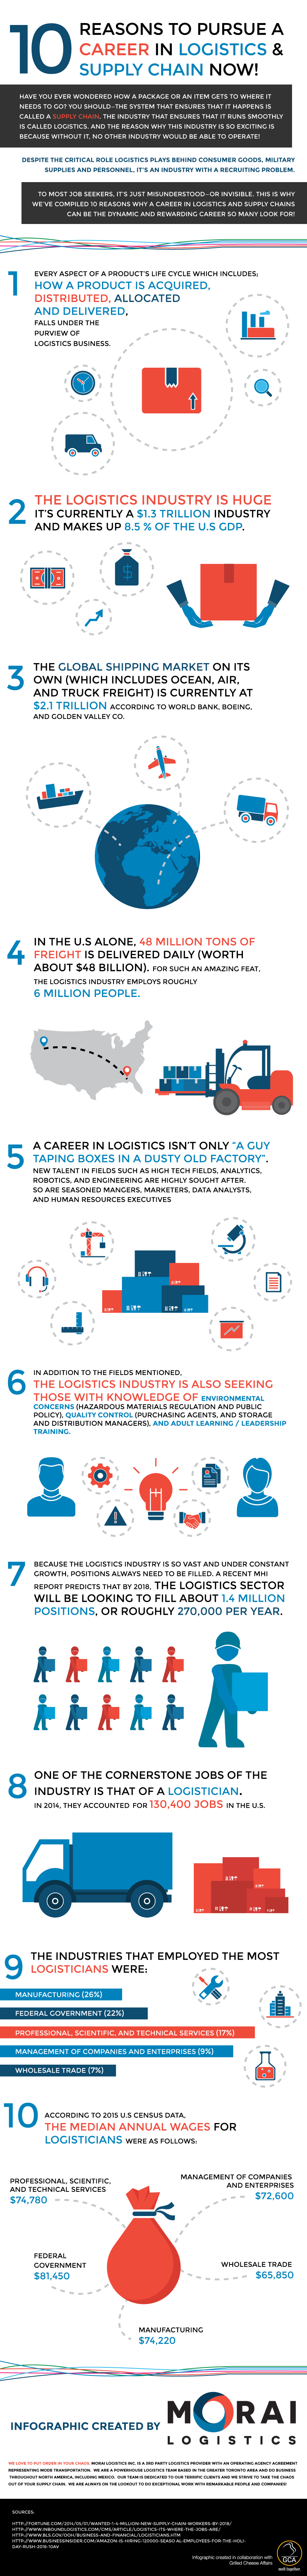 morai-logistics-infographic-10-reasons-to-pursue-career-in-supply-chain-logistics